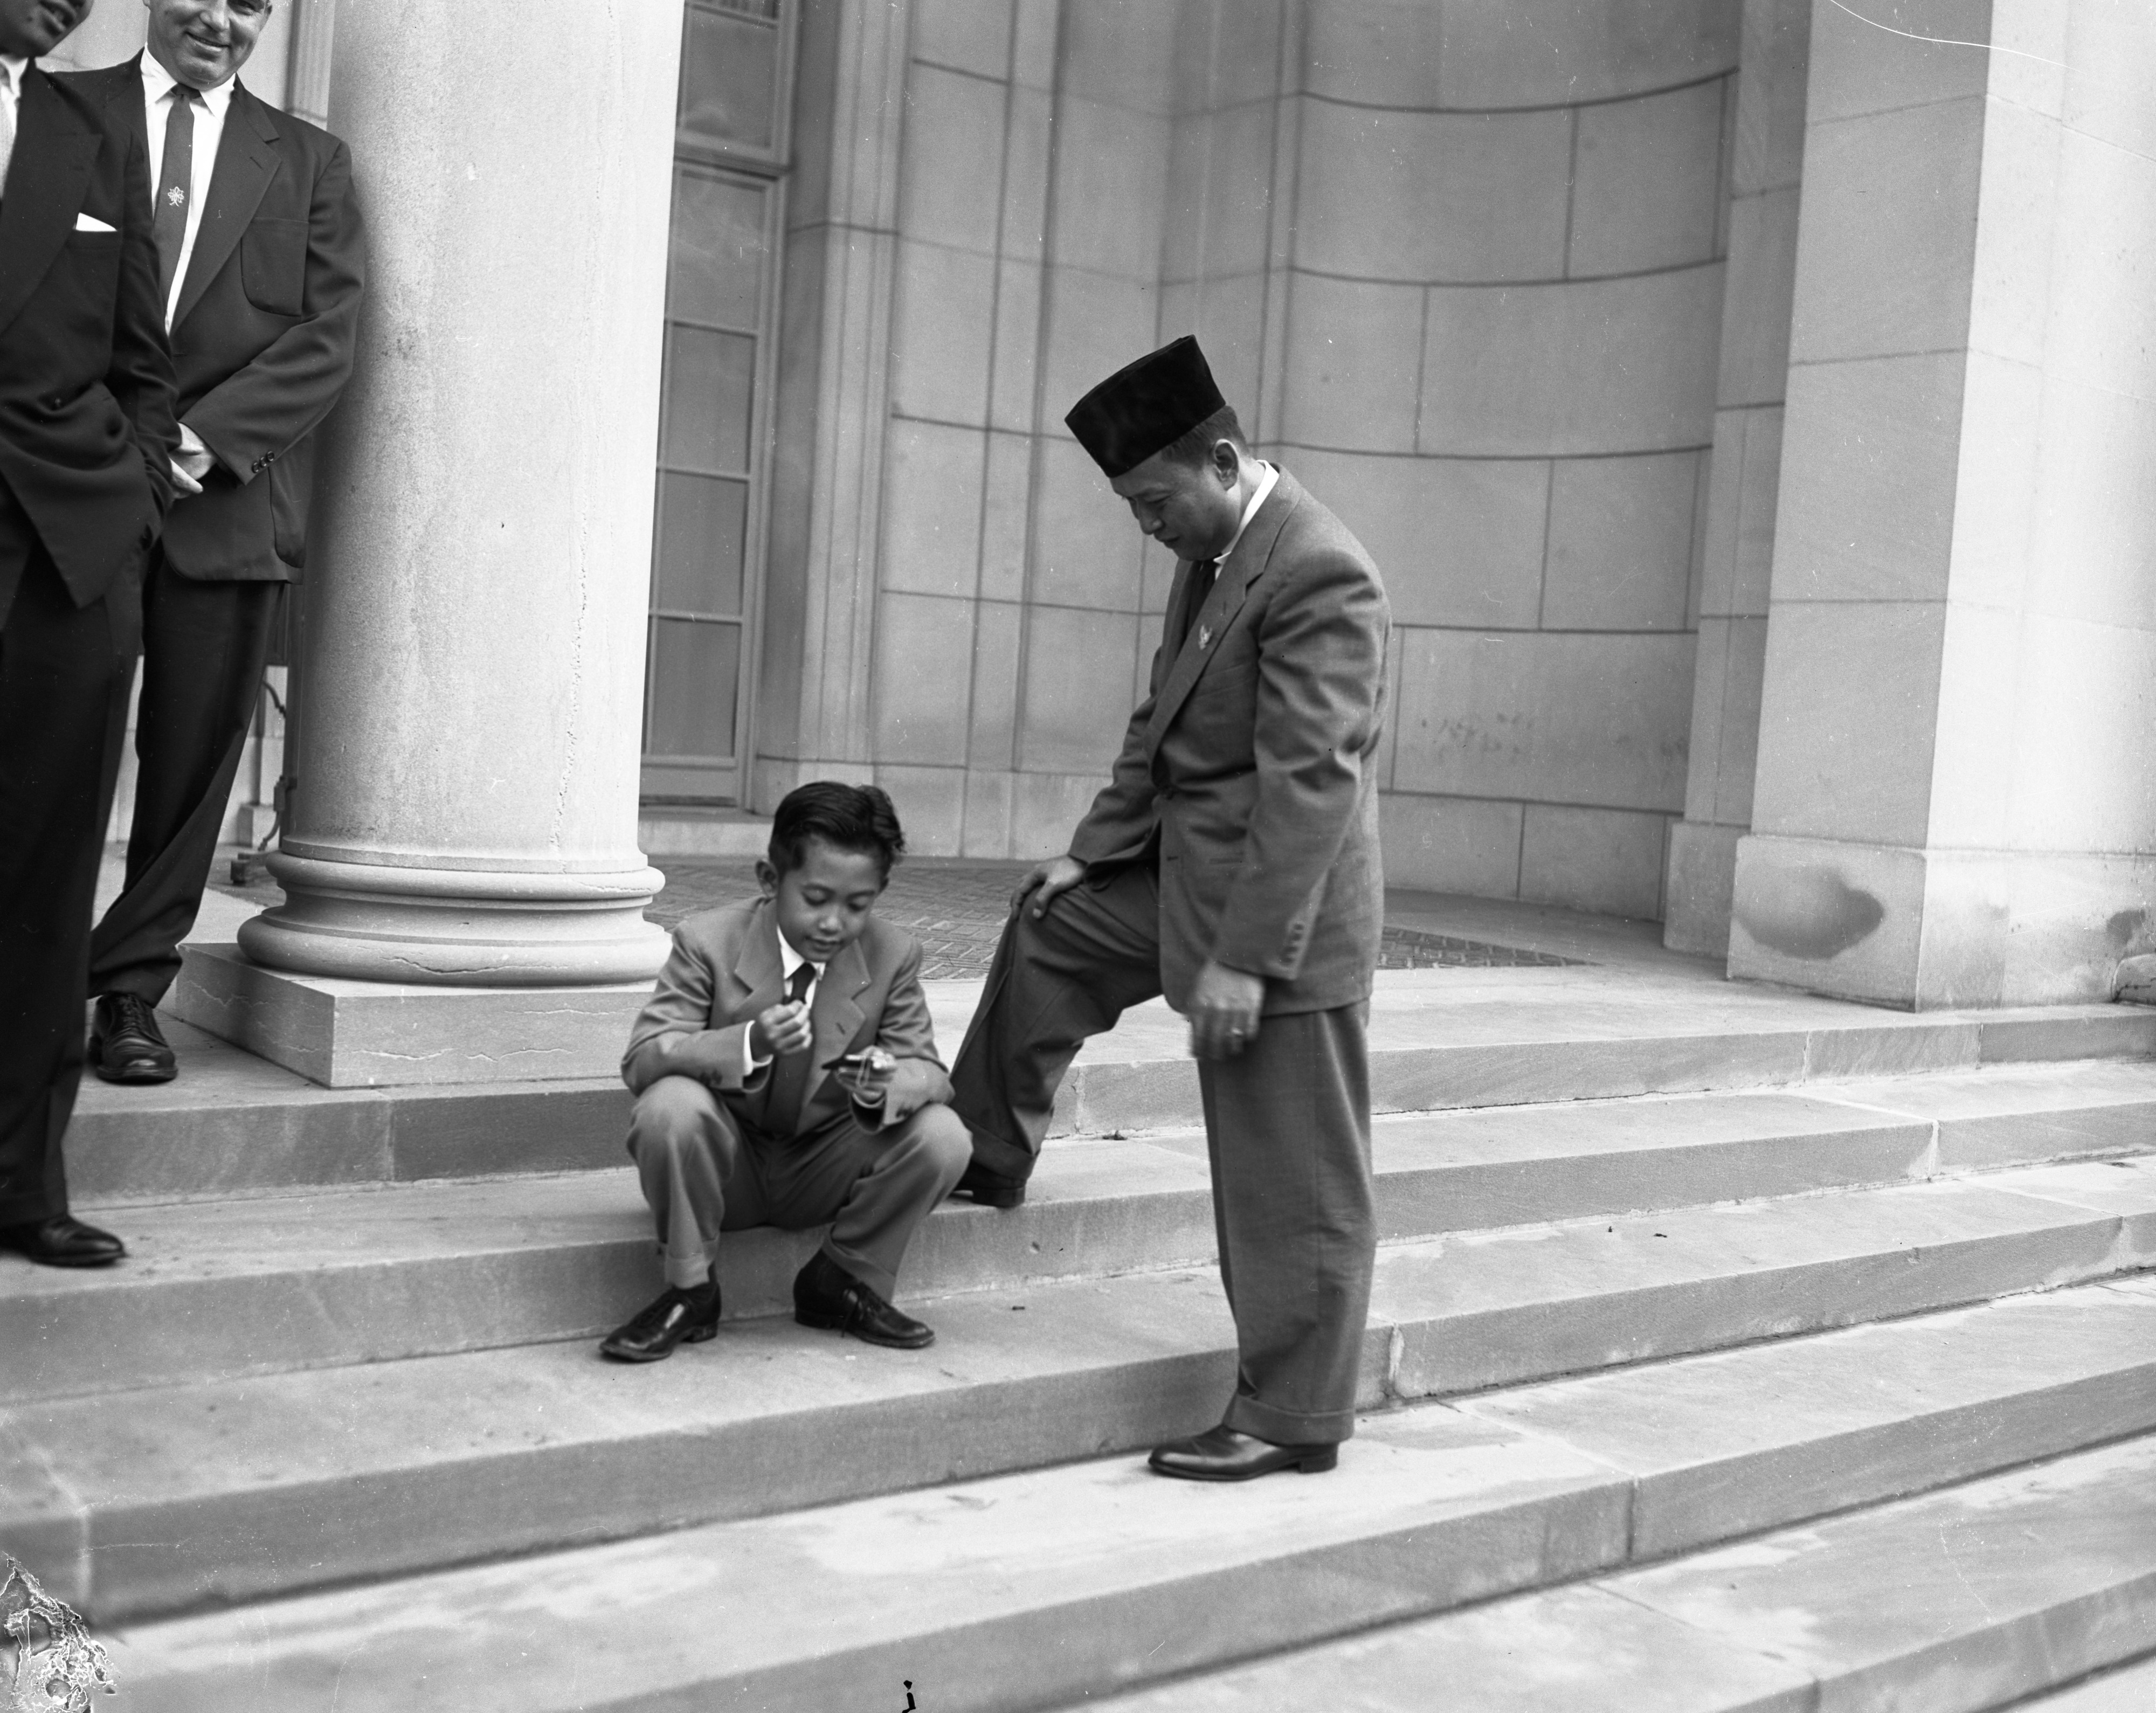 Mohammed Guntur, son of the President Sukarno of Indonesia, with his tutor Tukimin, on the steps of the Clements Library, May 1956 image